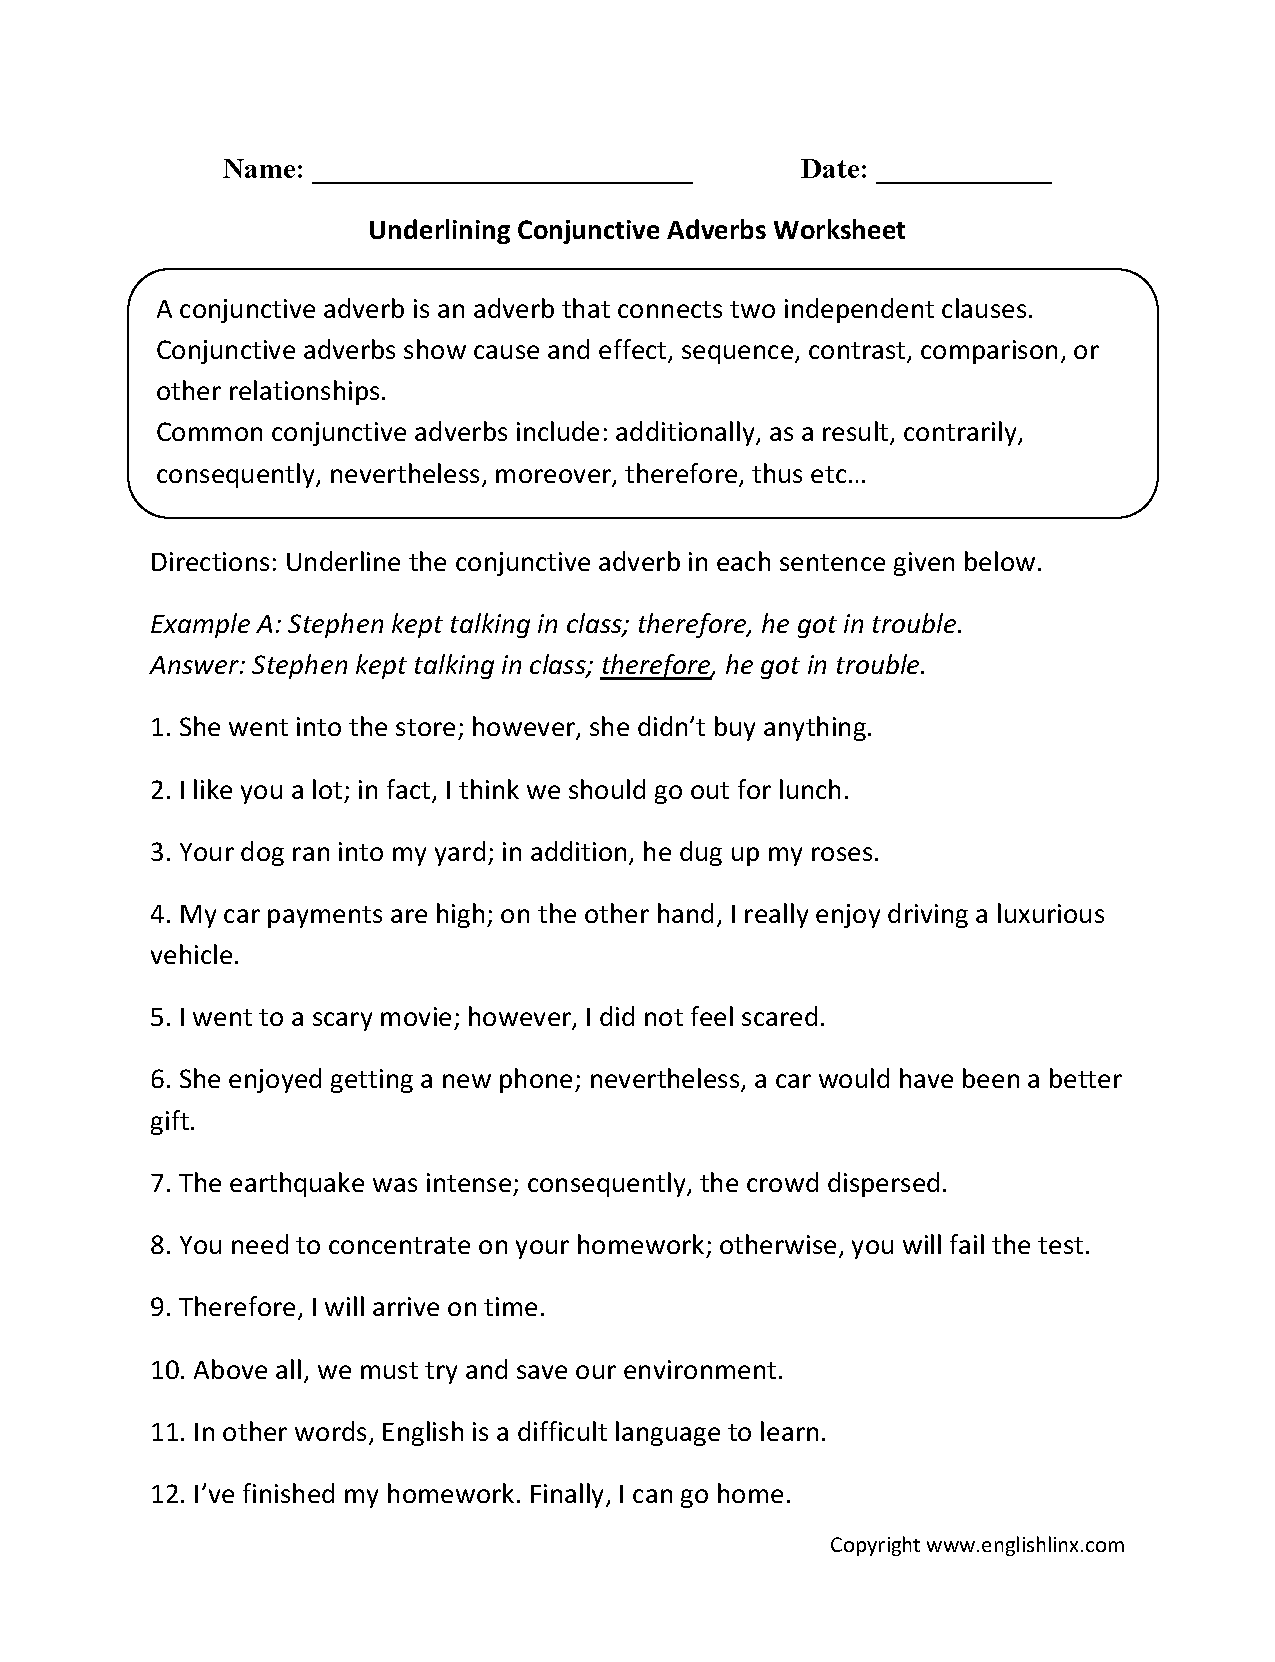 Weirdmailus  Nice Englishlinxcom  Conjunctions Worksheets With Gorgeous Worksheet With Astonishing Twostep Word Problems Worksheet Also Transcription Worksheet Answers In Addition Types Of Reactions Worksheet Then Balancing And Entropy Worksheet As Well As Verb To Be Worksheets Additionally Graph Linear Equations Worksheet From Englishlinxcom With Weirdmailus  Gorgeous Englishlinxcom  Conjunctions Worksheets With Astonishing Worksheet And Nice Twostep Word Problems Worksheet Also Transcription Worksheet Answers In Addition Types Of Reactions Worksheet Then Balancing From Englishlinxcom